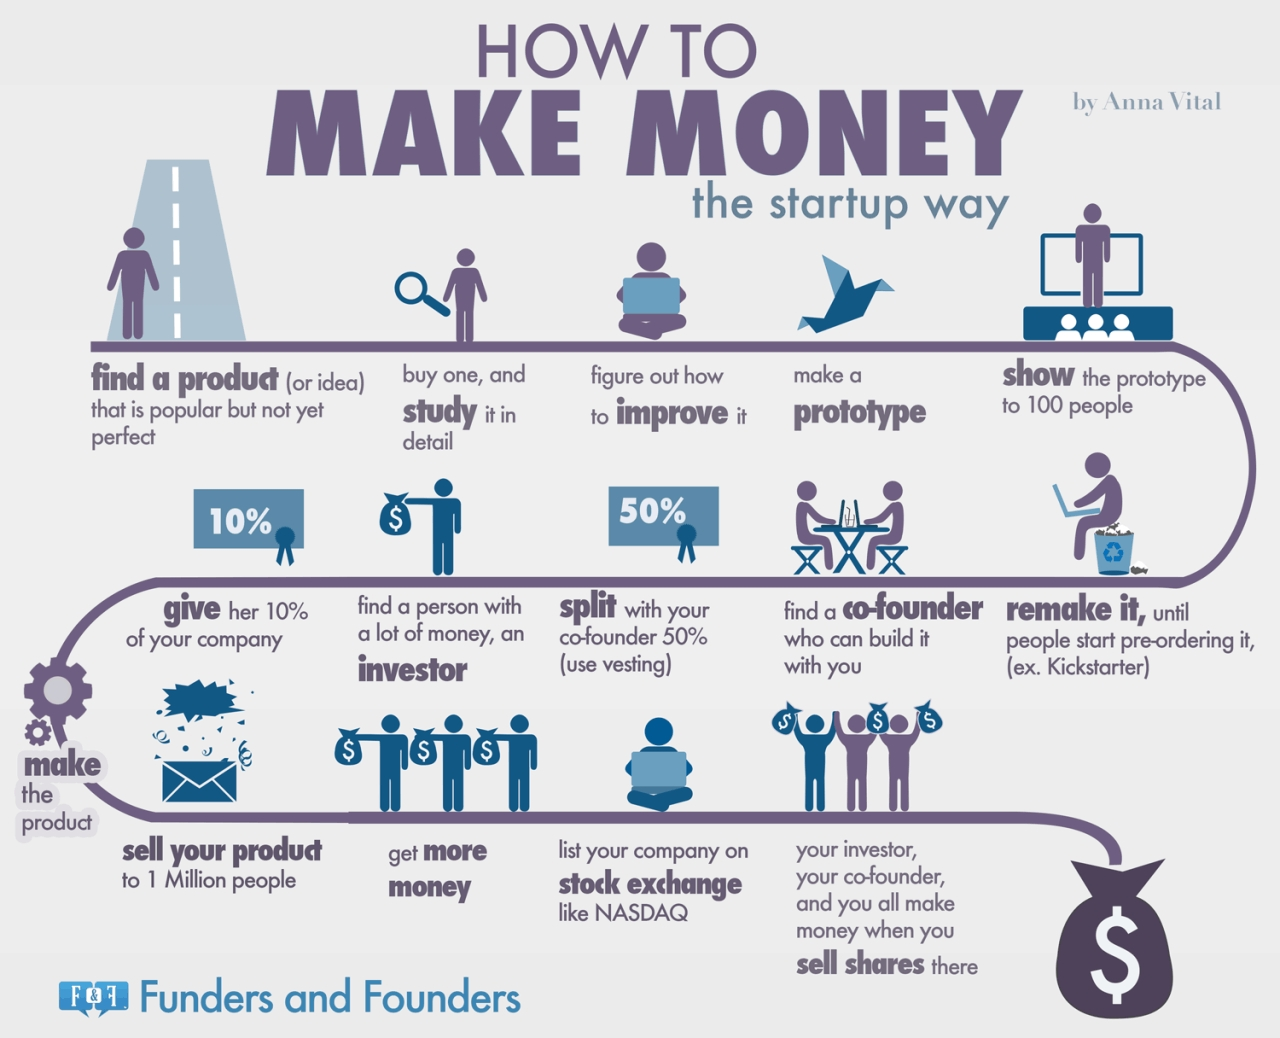 how to make money - the startup way [infographic]